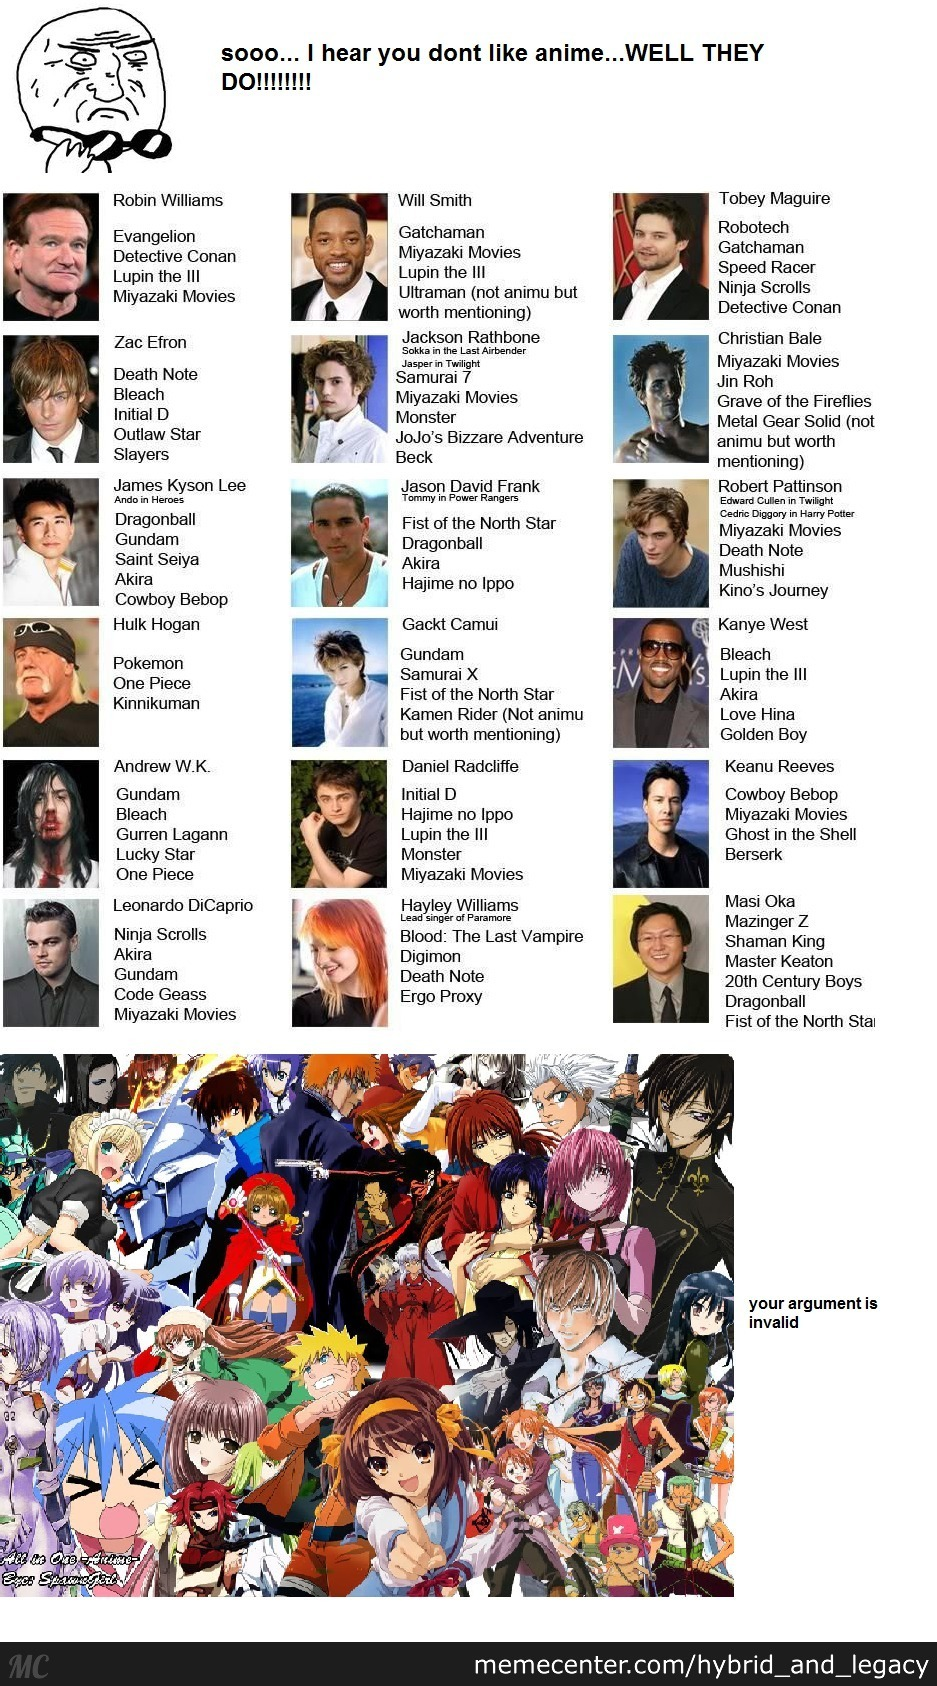 Anime with someone dating a celebrity